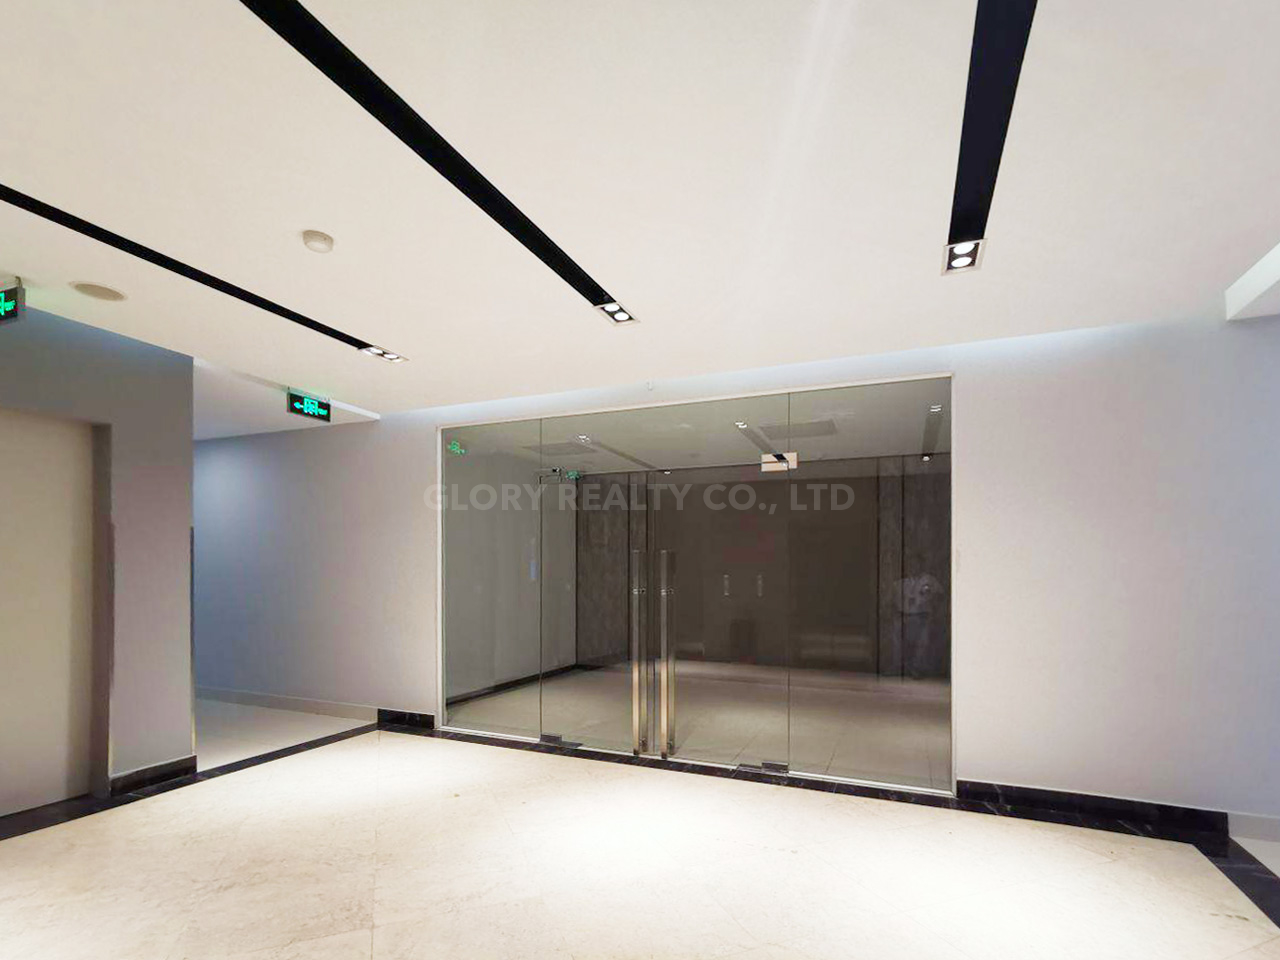 102 Sqm office space for rent in Toul Tumpong 2 area